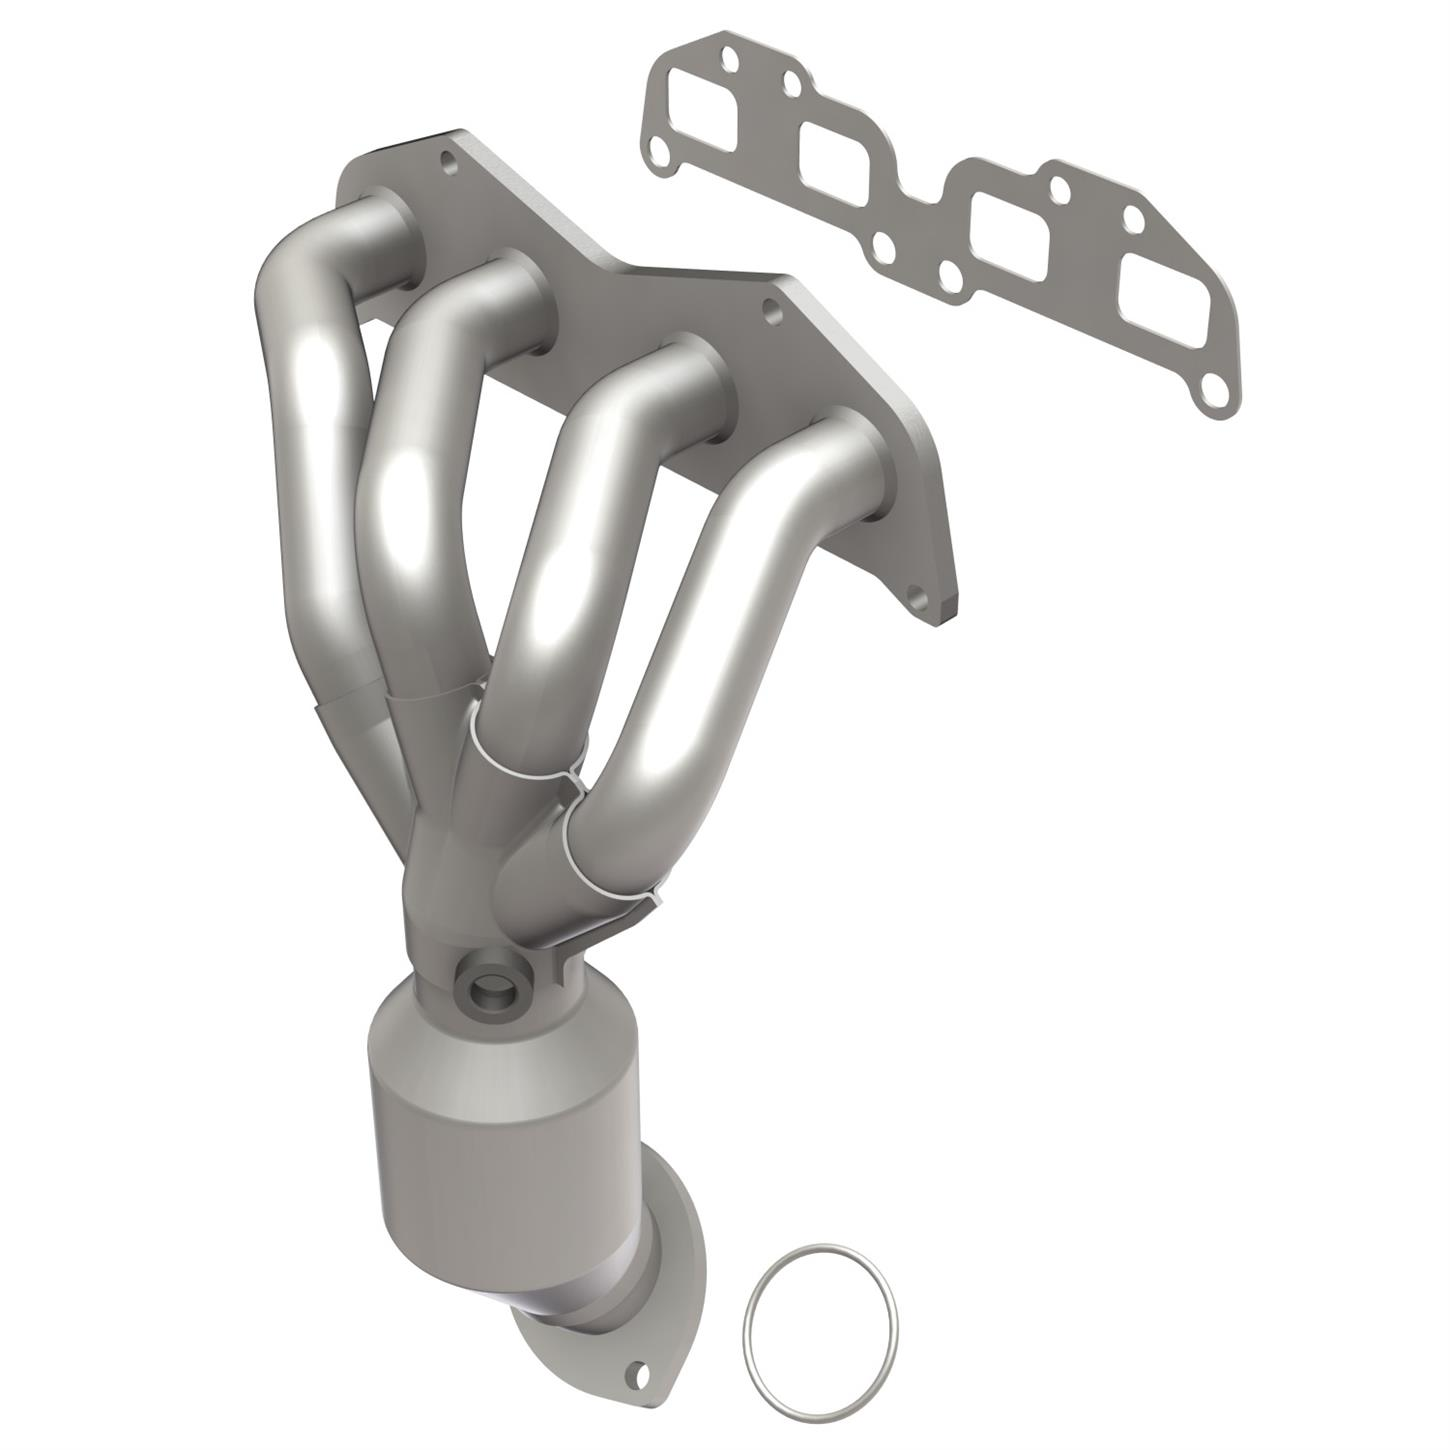 New Catalytic Converter for 02-09 Toyota Camry